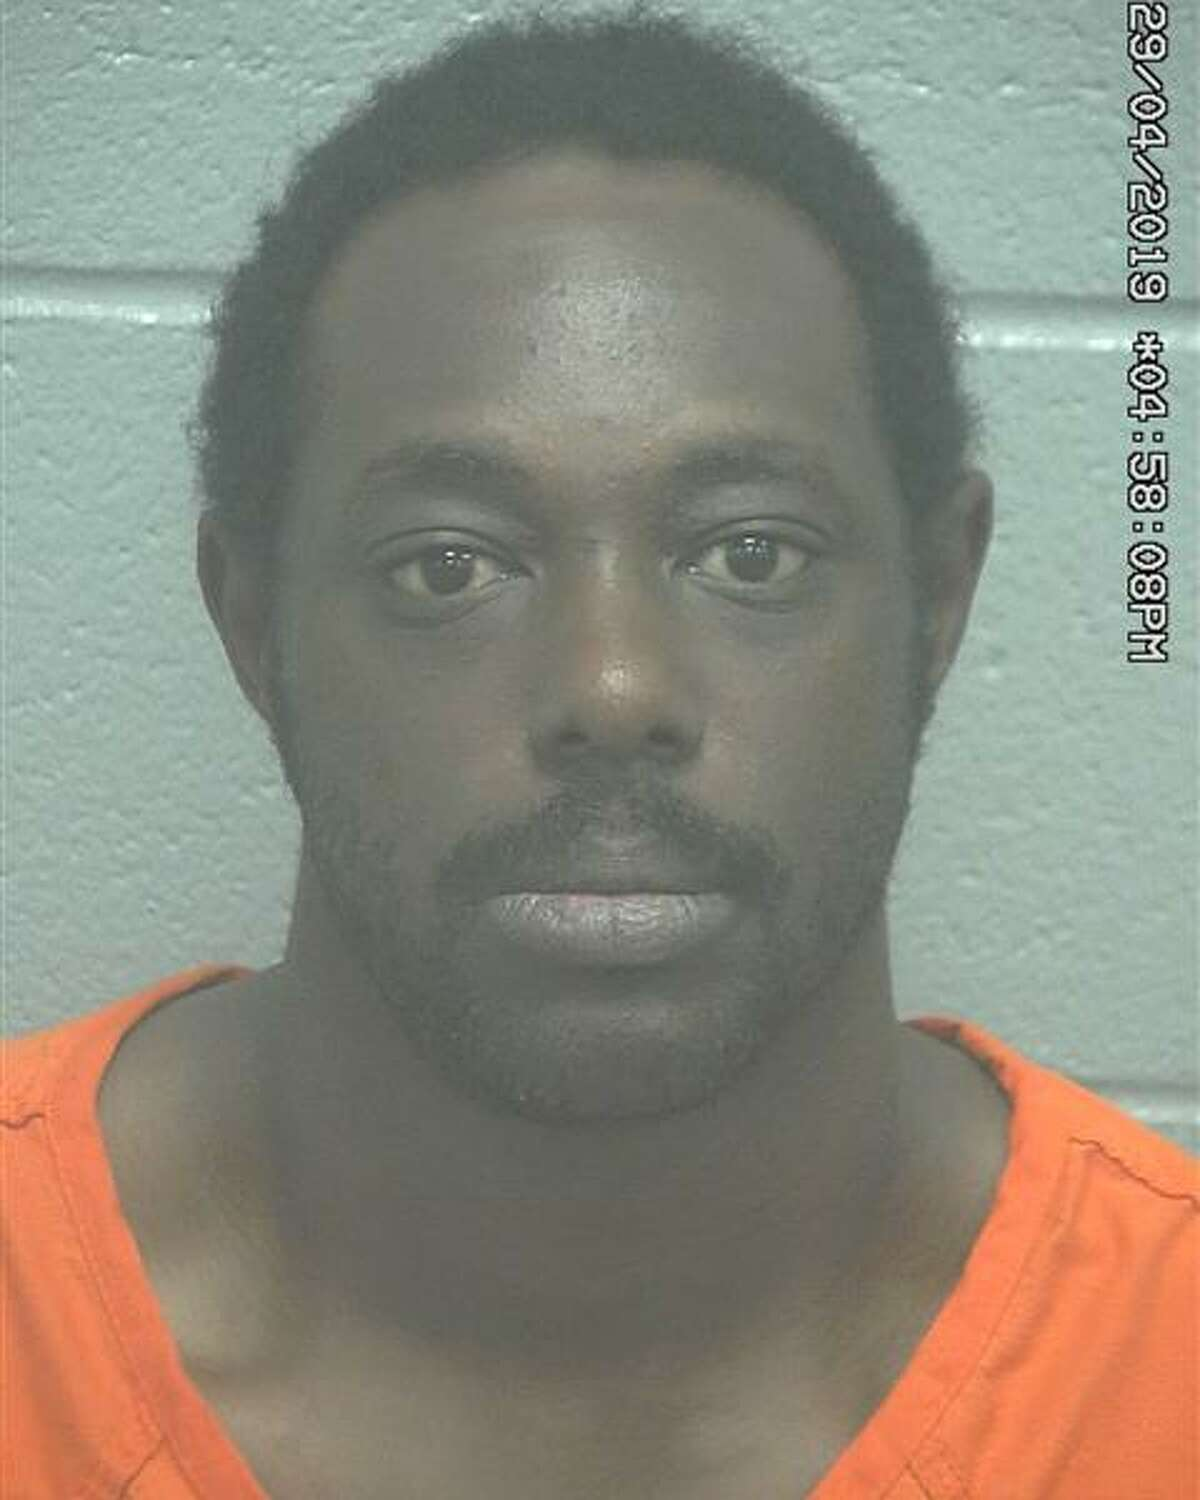 Cleveland C. Johnson II, 33, was being held at Midland County jail Wednesday, Oct.7, 2020 on a capital murder charge in connection with the death of an infant, according to a press release from the city's spokeswoman.